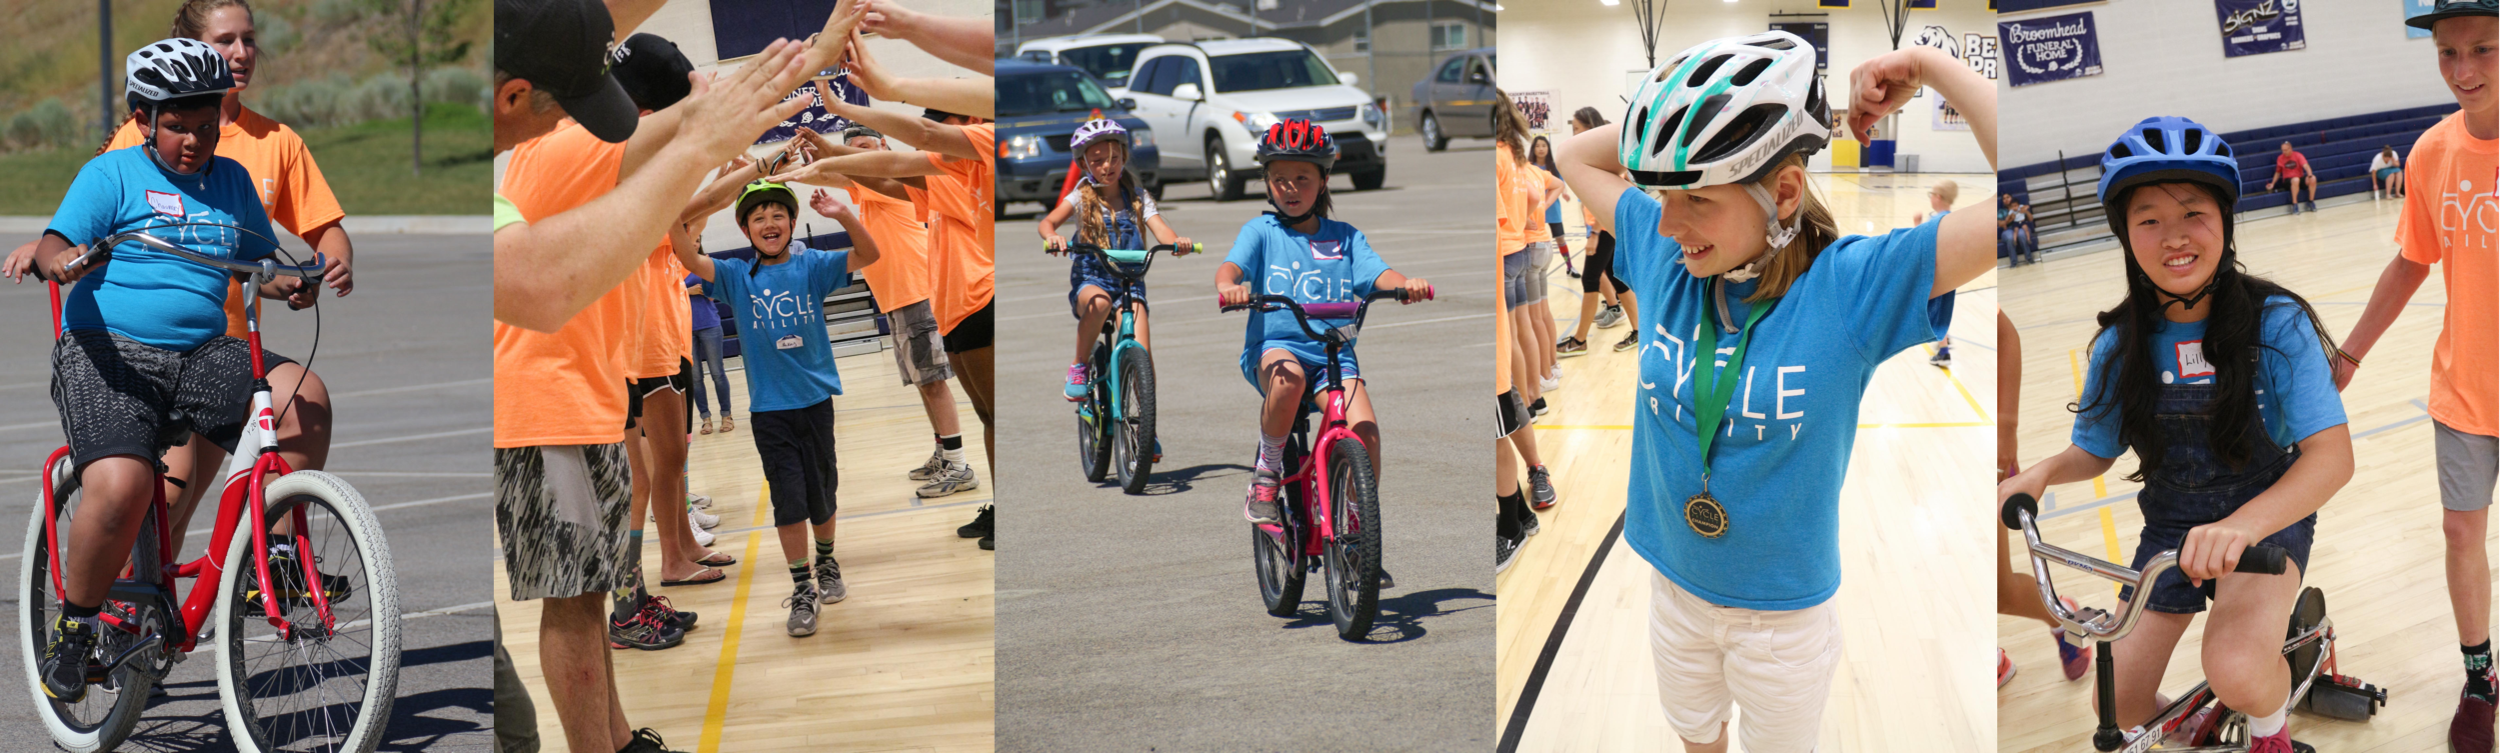 CycleAbility is Expanding!   Cycling Education for All Abilities   Special Needs Cycling   Mountain Biking   Learn to Ride a Bike for Kids